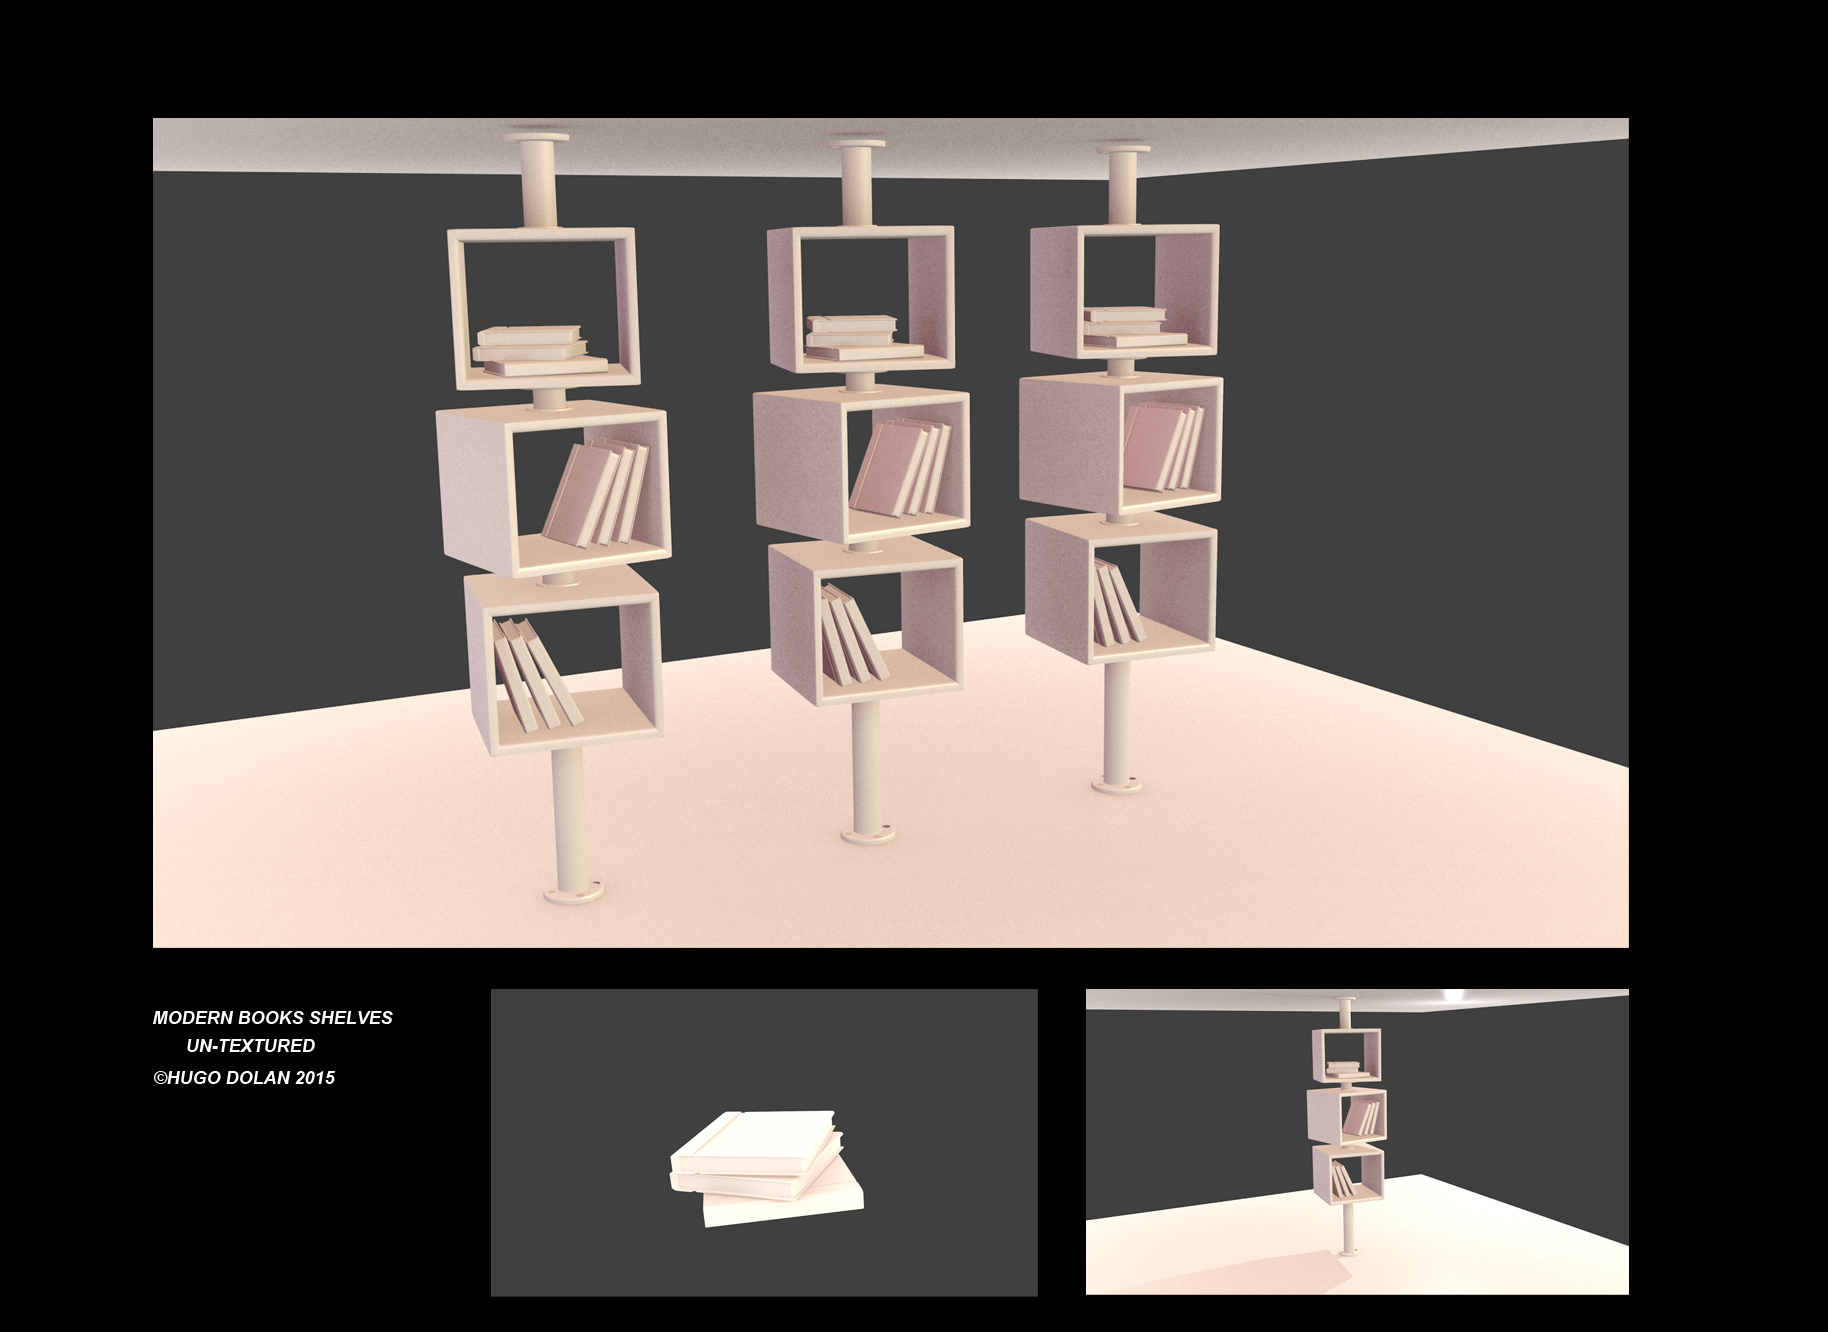 Blender Basic Some Basic Furniture Design In Blender Image Hugo1005 Mod Db